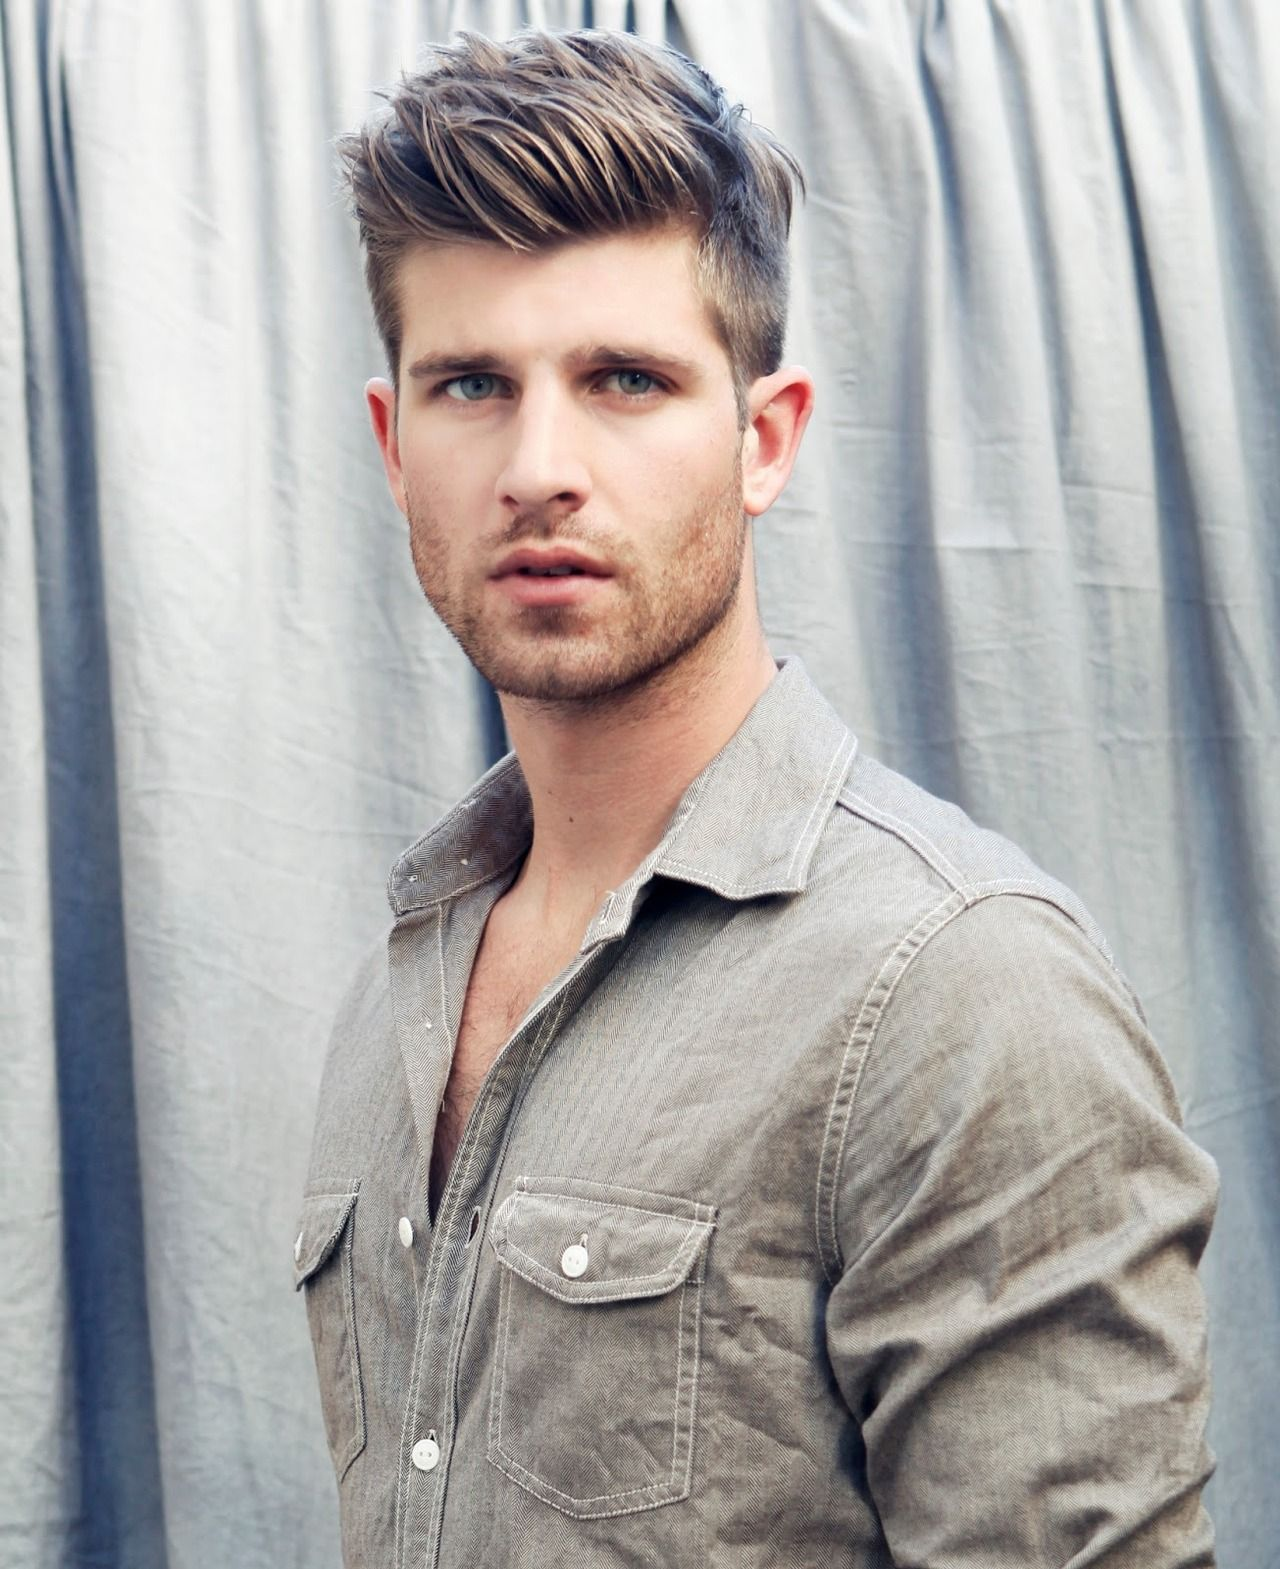 Hairstyle of boy logan mcneil  coupe homme  pinterest  hair styles hair and